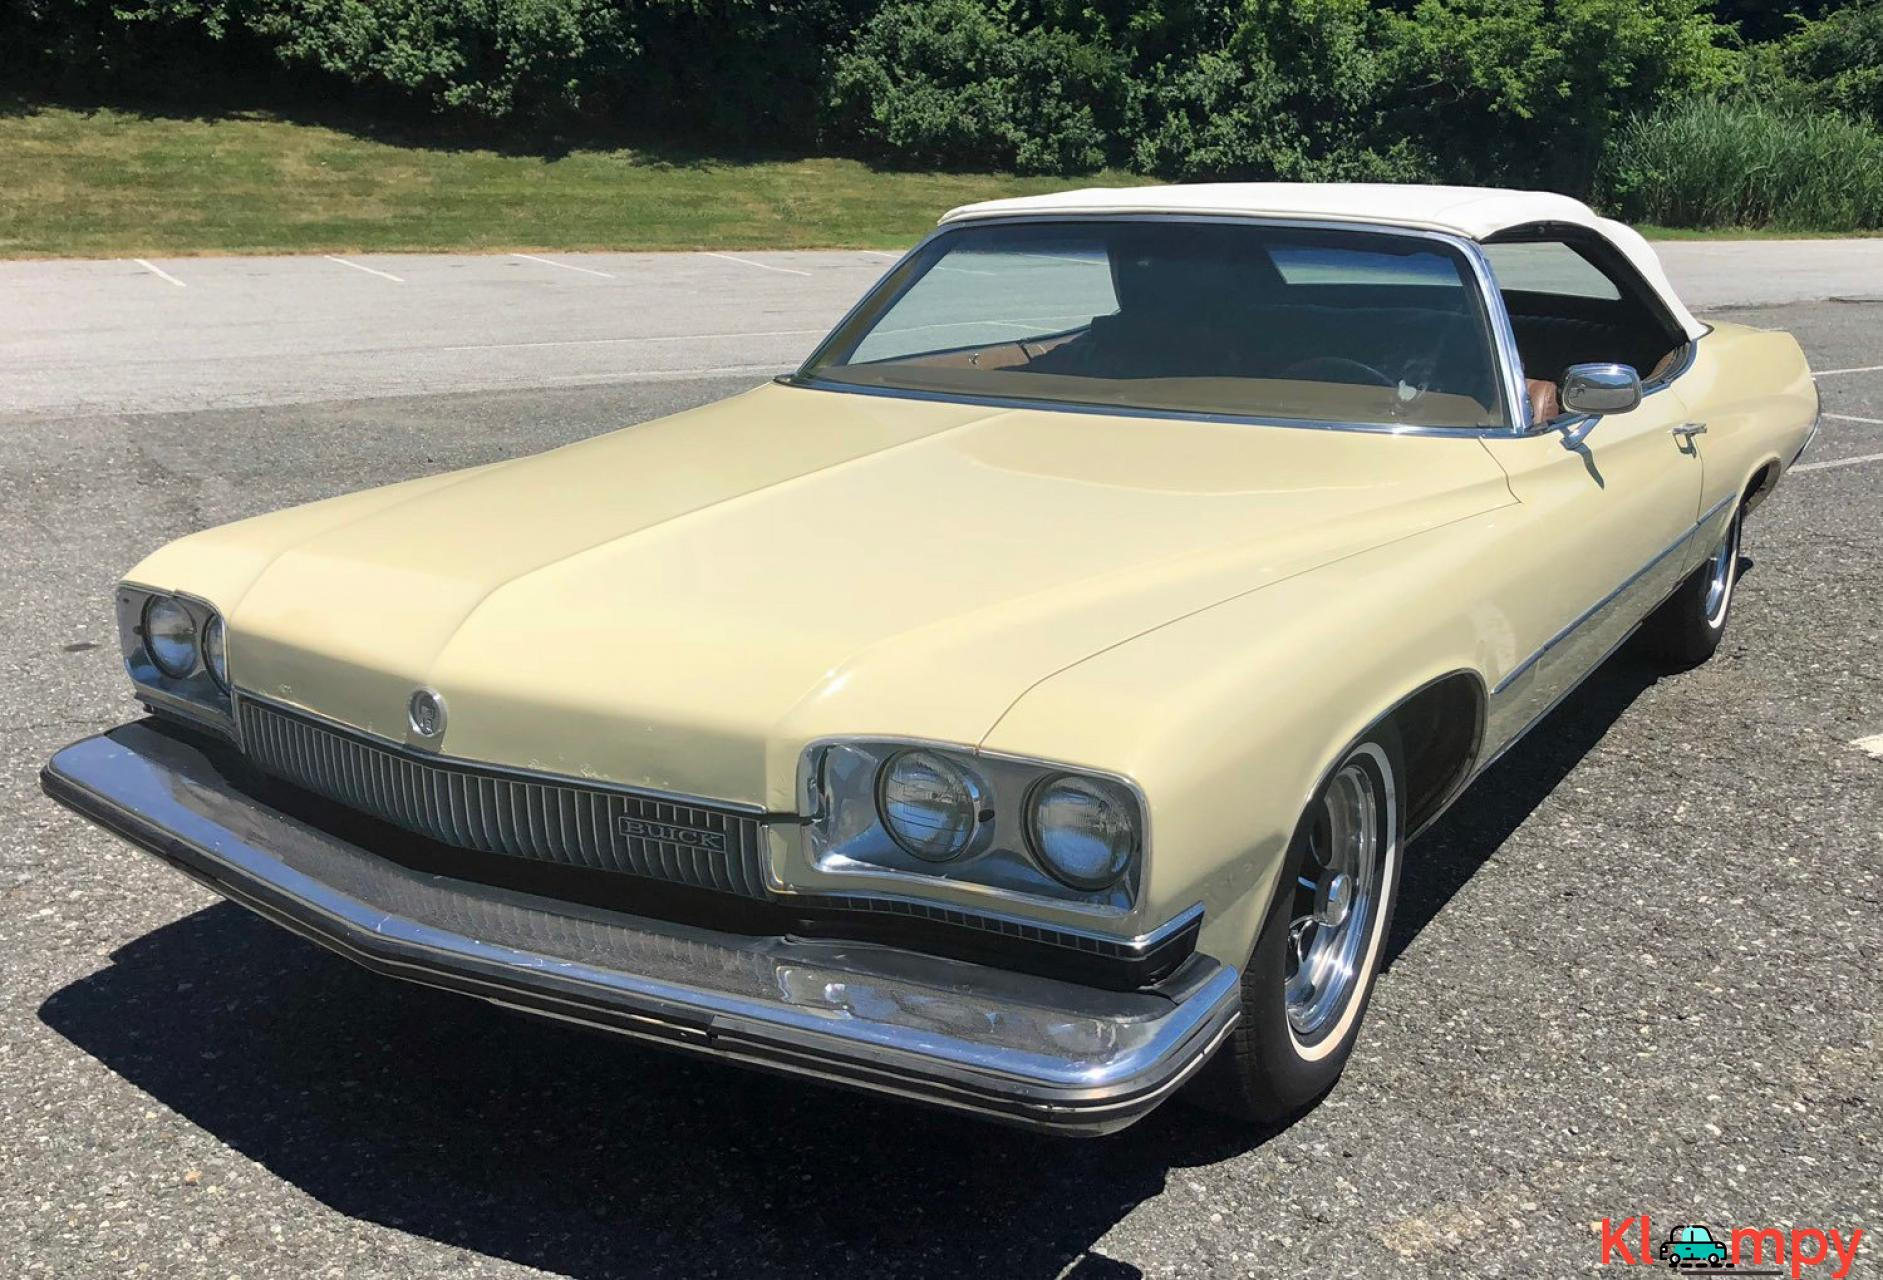 1973 Buick Centurion 350 Convertible V8 - 3/20